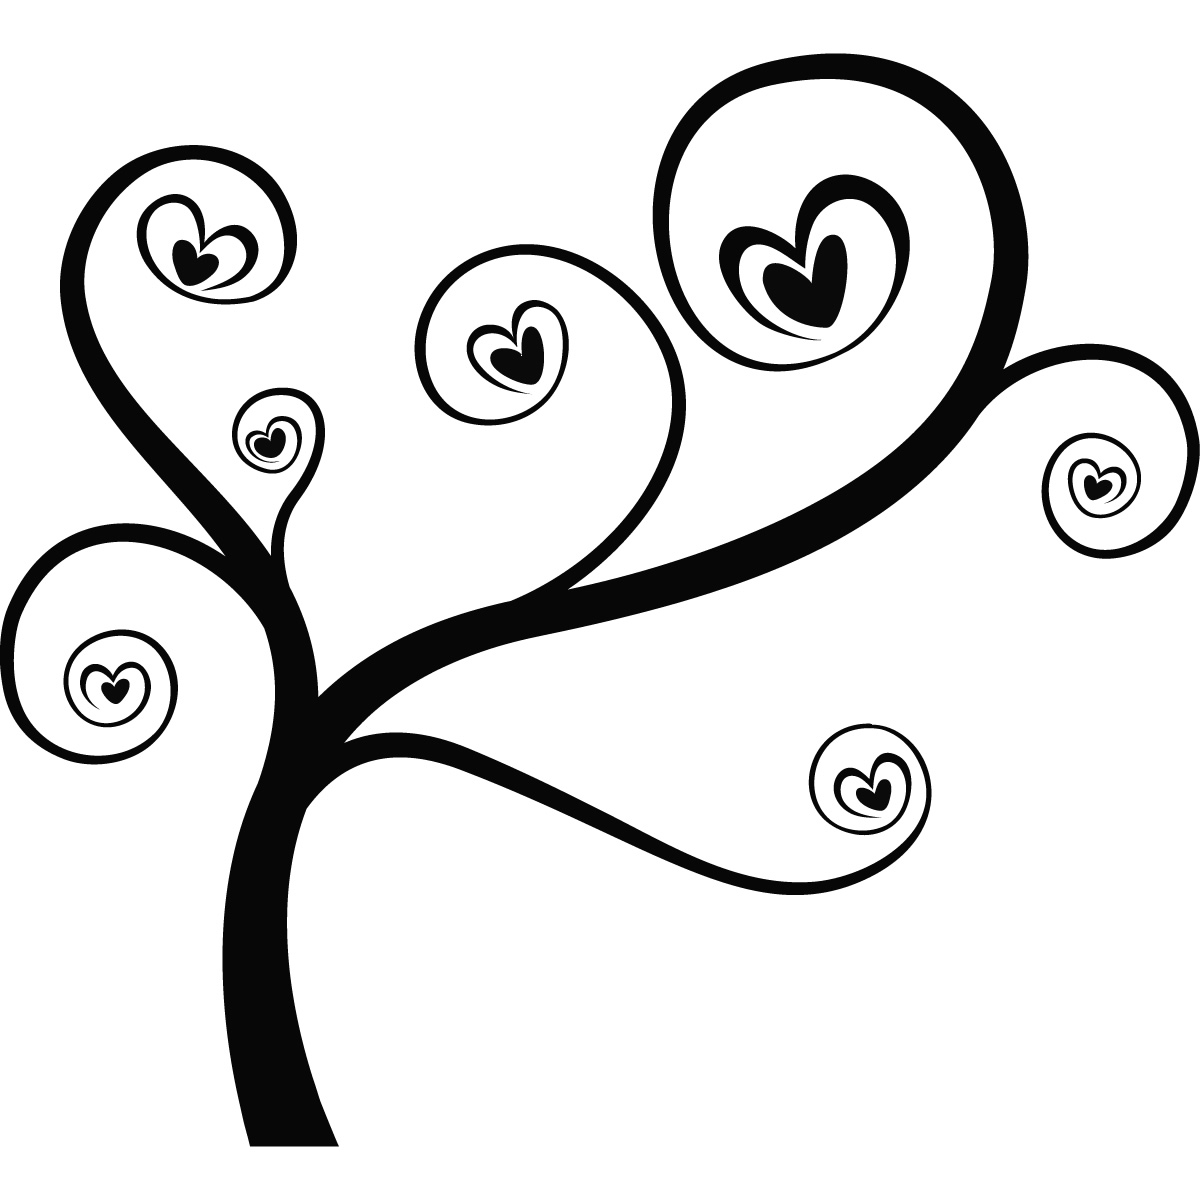 Line Art Love Heart : Heart tree love branches wall art sticker